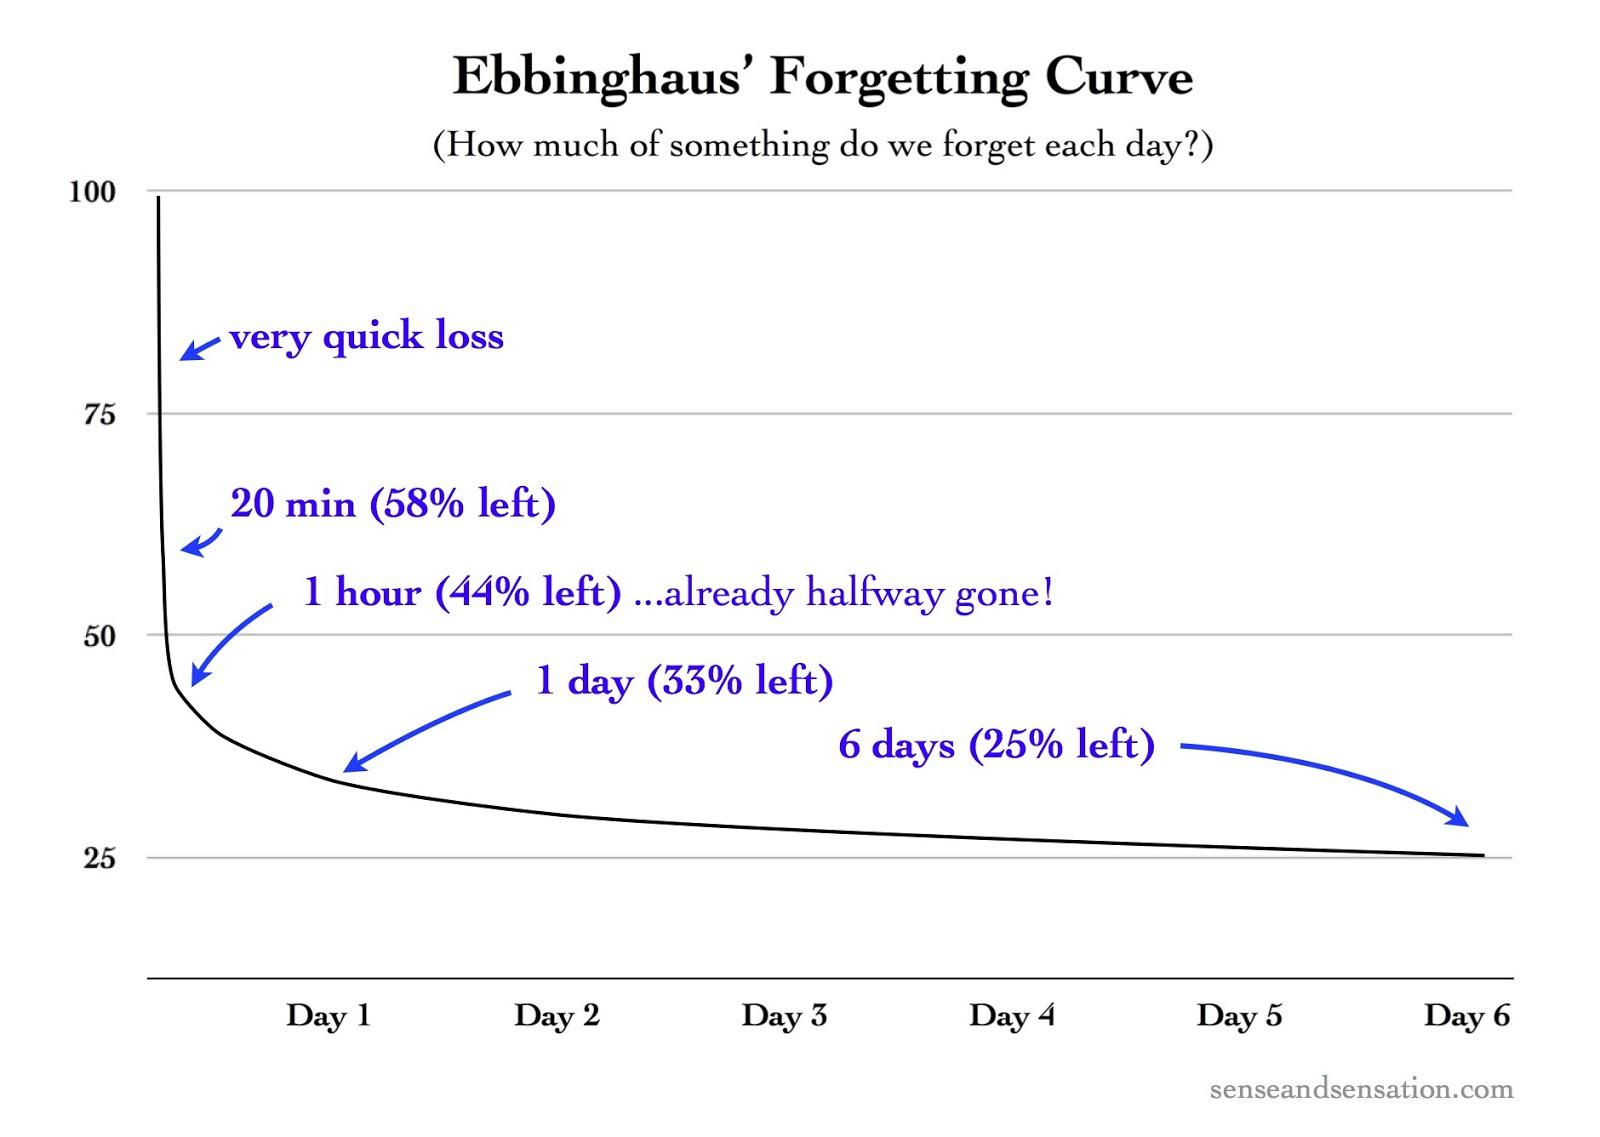 https://upload.wikimedia.org/wikipedia/commons/7/75/Ebbinghaus%E2%80%99s_Forgetting_Curve_%28Figure_1%29.jpg